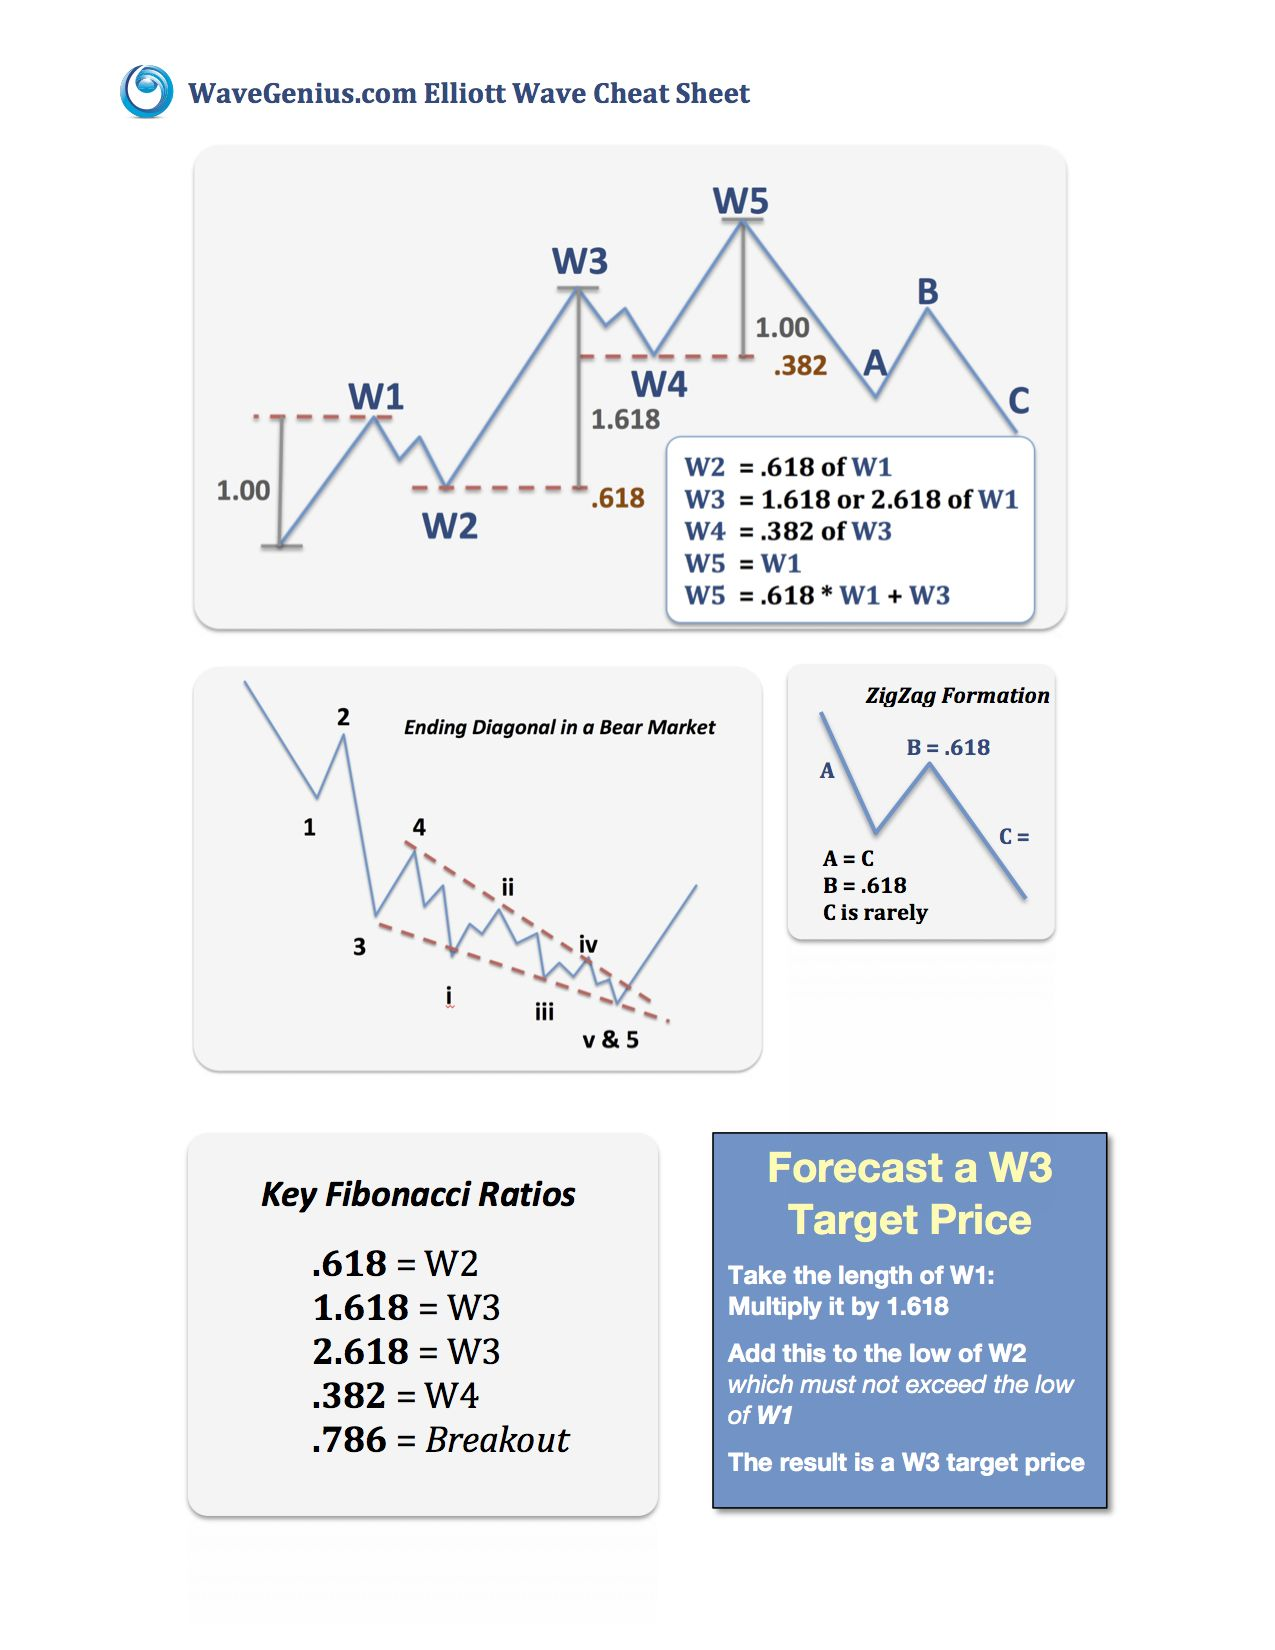 The Wavegenius Com Elliott Wave Cheat Sheet Finanzas Estados